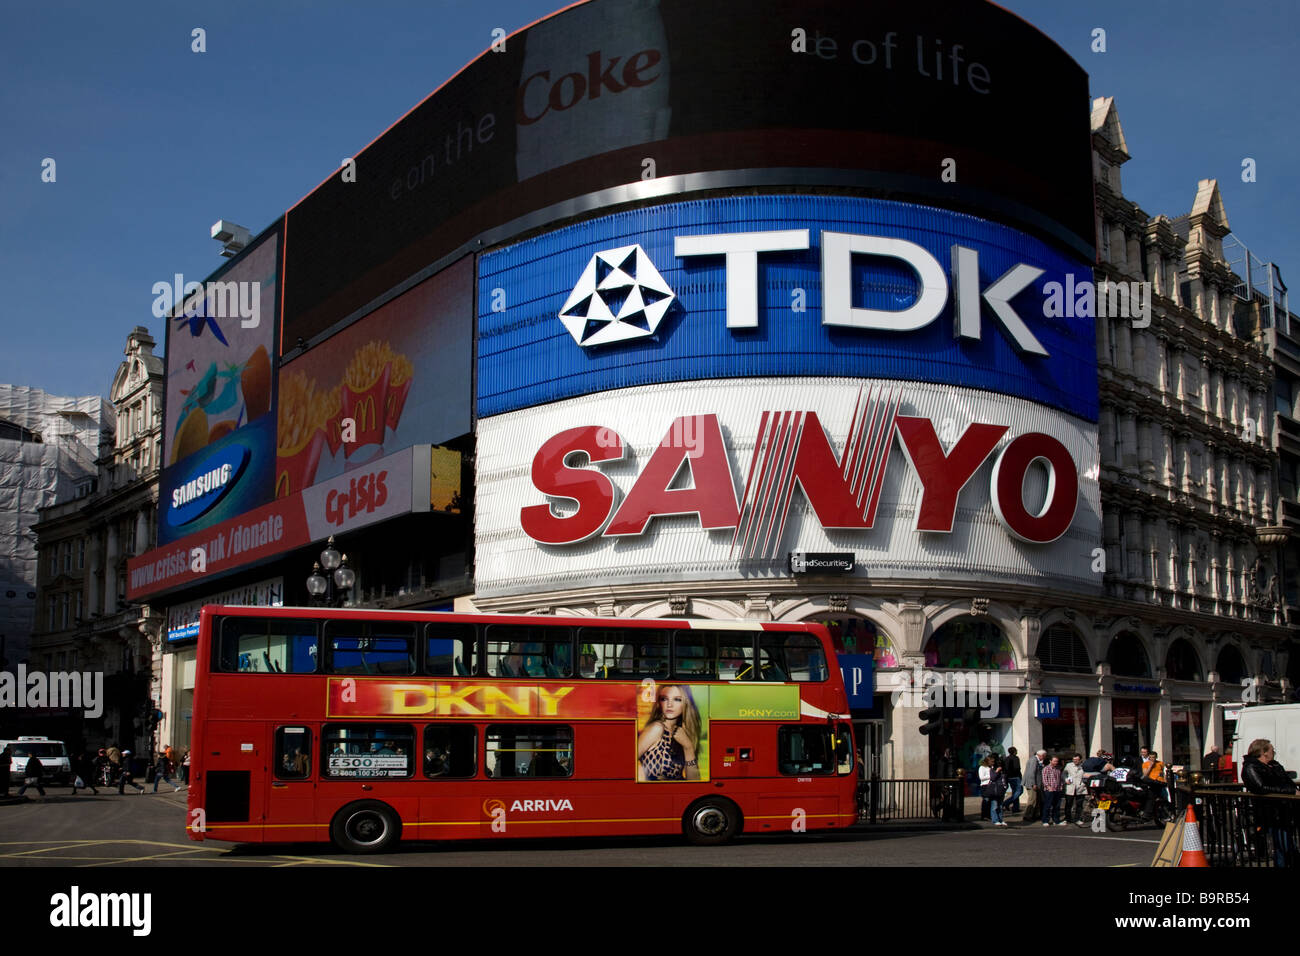 Piccadilly Circus London England - Stock Image